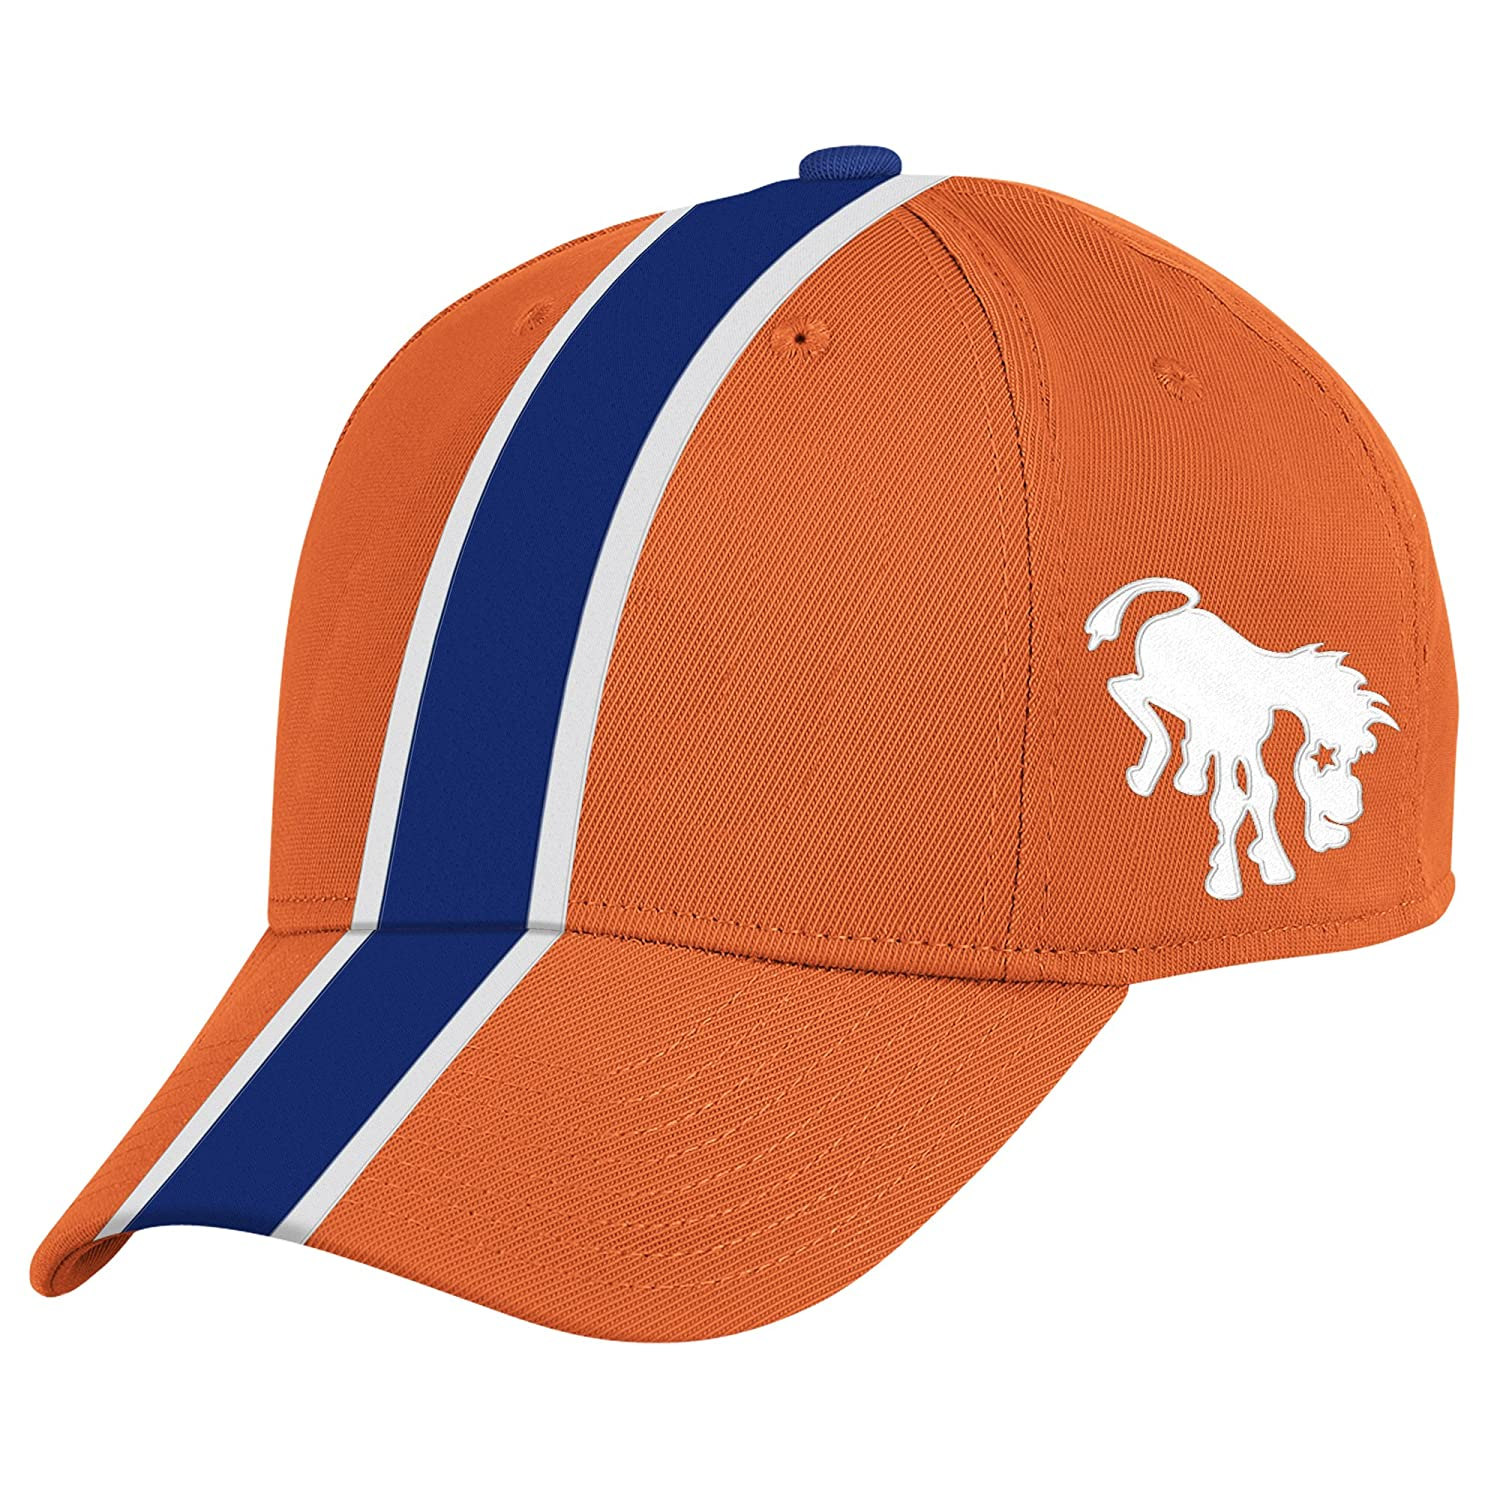 Amazon.com : Denver Broncos Authentic Mitchell & Ness Retro Bucking Horse Logo Helmet Hat : Football Equipment : Sports & Outdoors